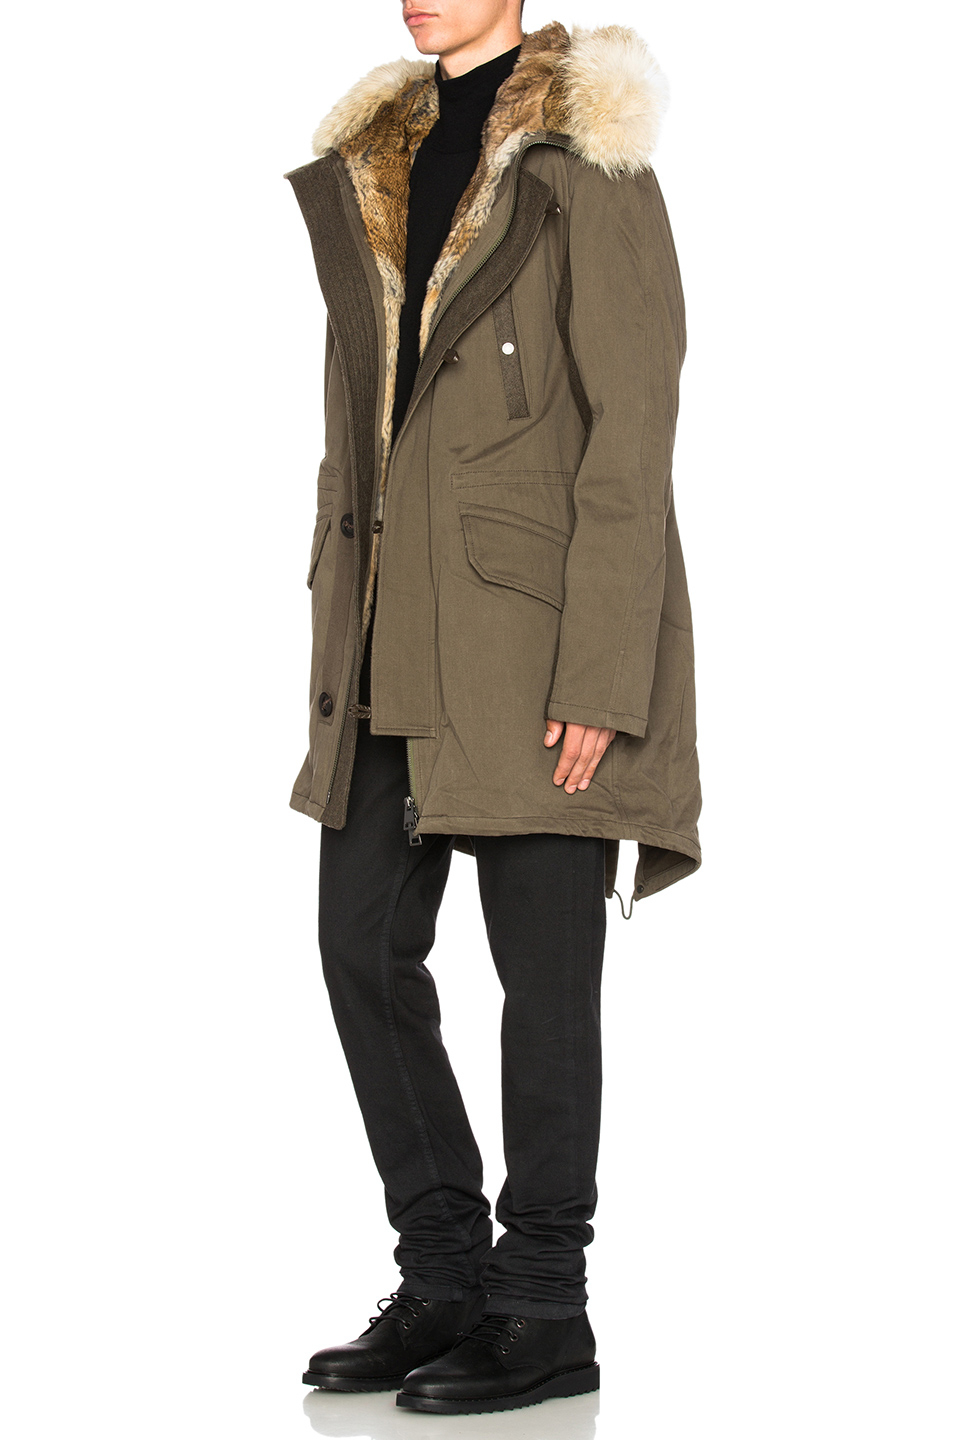 Yves Salomon Men's hooded black parka with coyote and rabbit